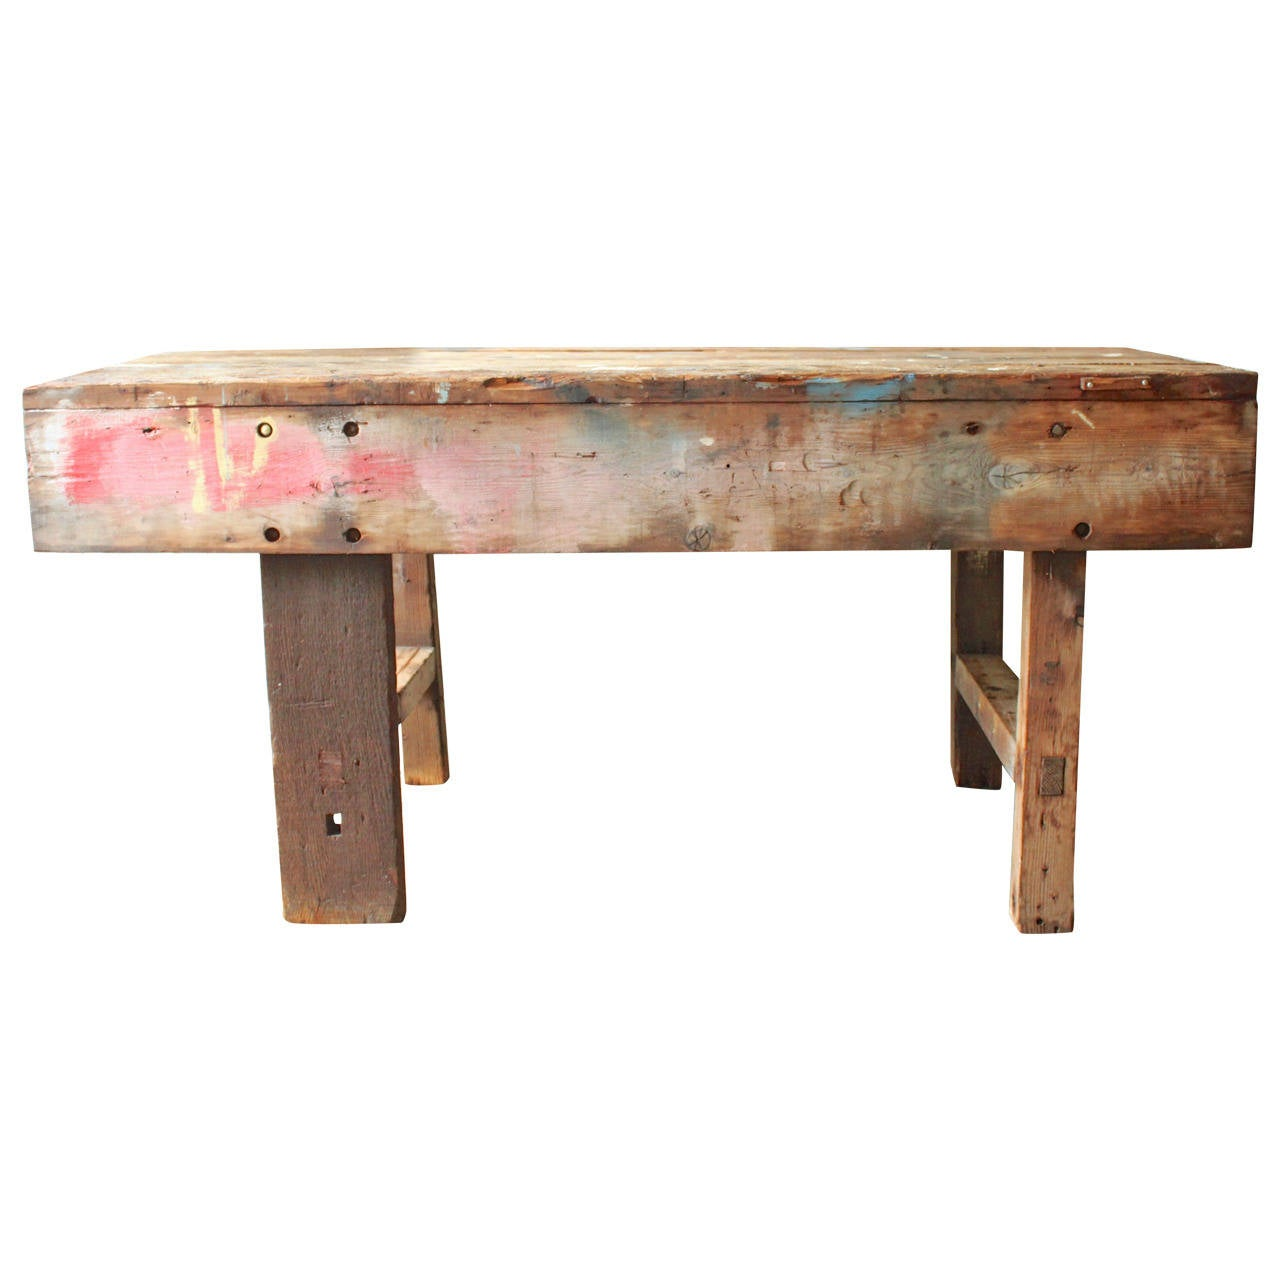 Primitive handmade work bench at 1stdibs for Furniture work table